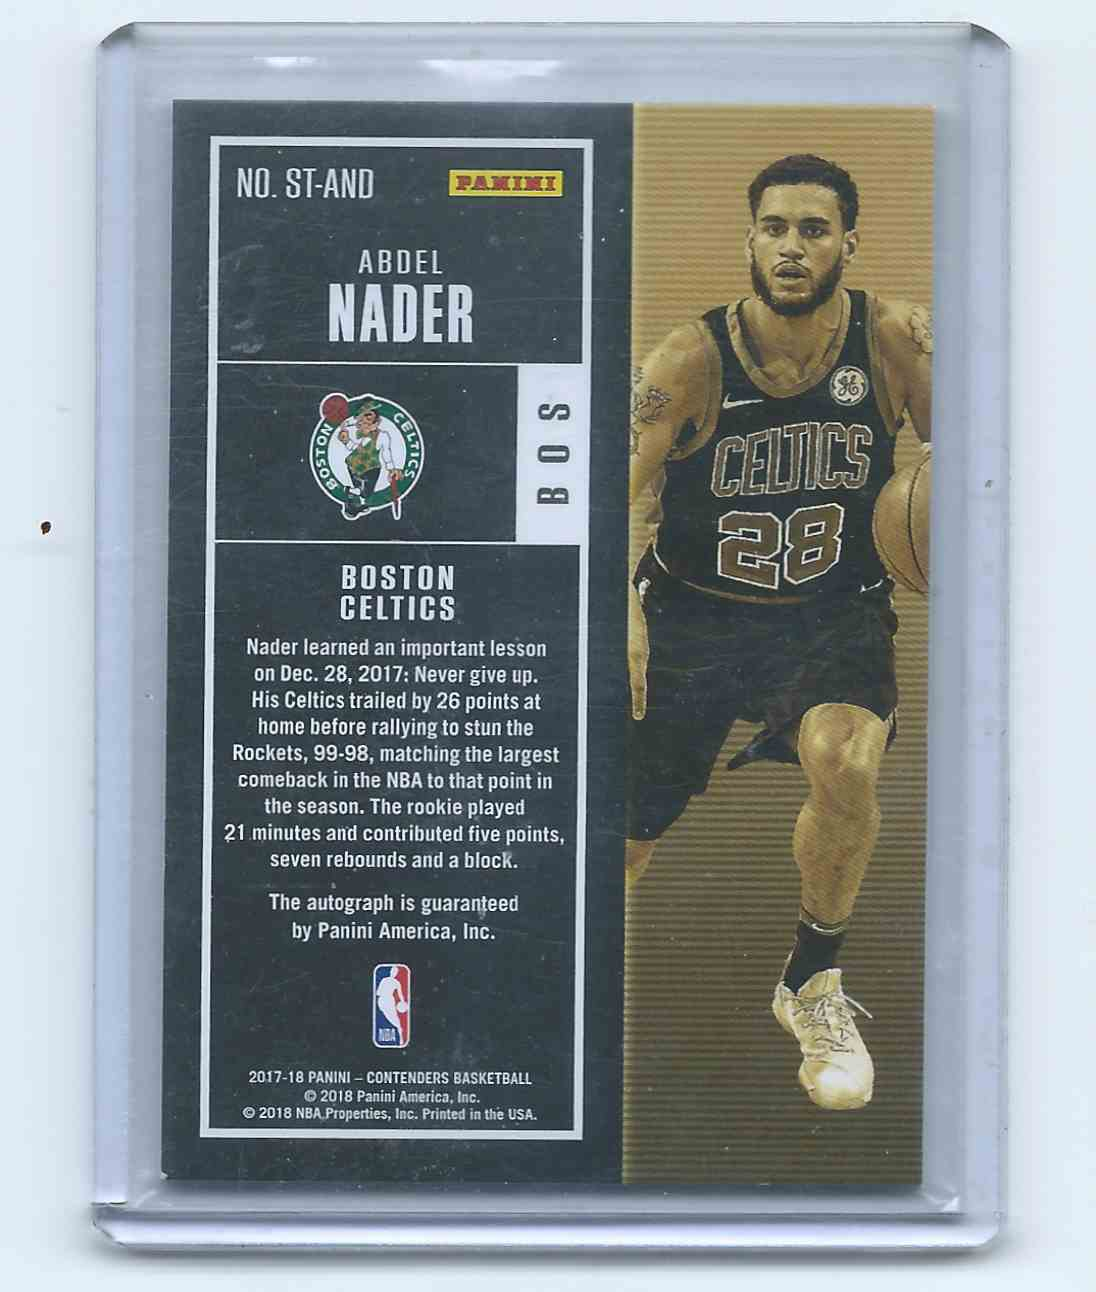 2017-18 Panini Contenders Retail Rookie Ticket Autographs Abdel Nader #ST-AND card back image